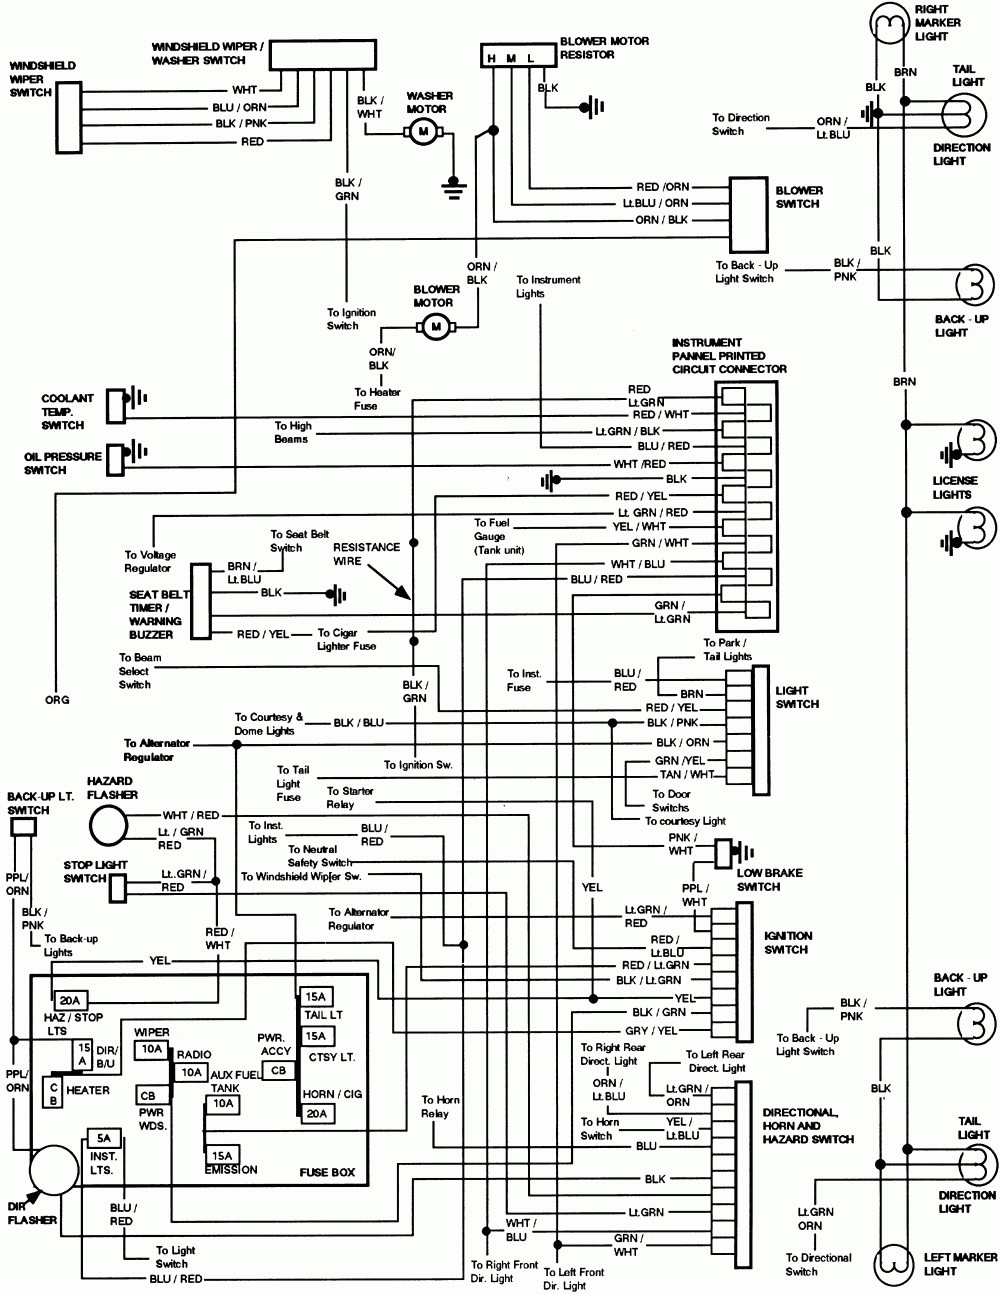 1985 Ford Truck Ignition Wiring Diagram - Illustration Of Wiring ...